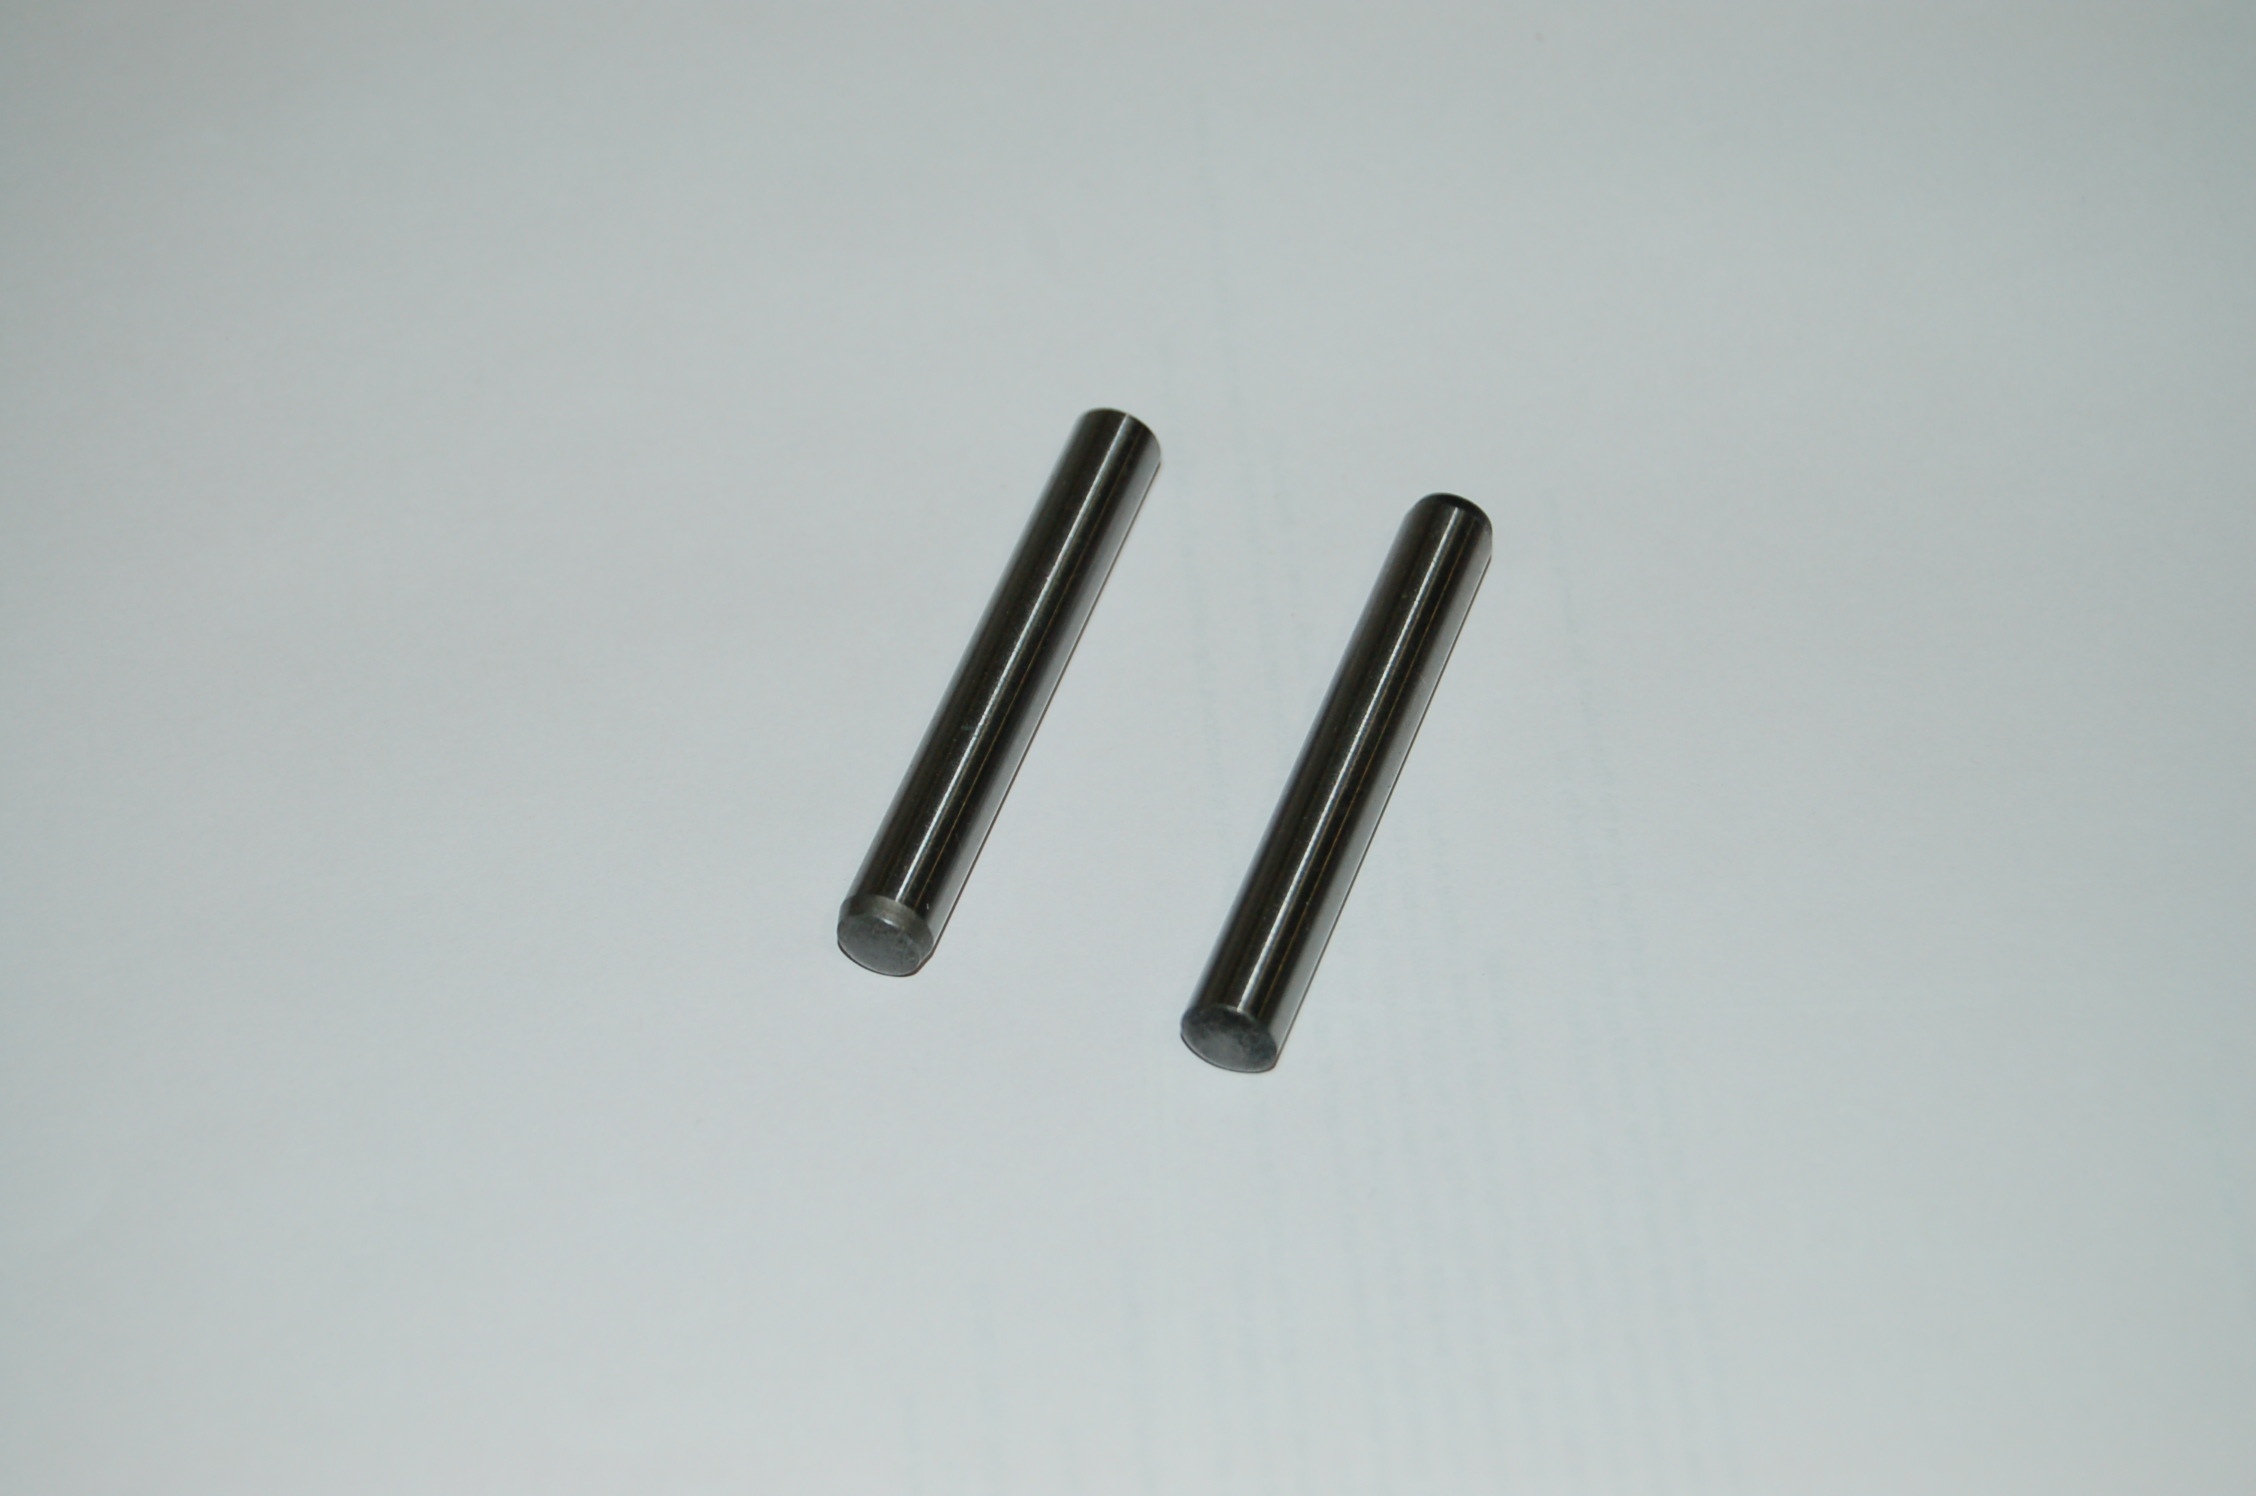 8mm x 60mm Retract Pin (pr)